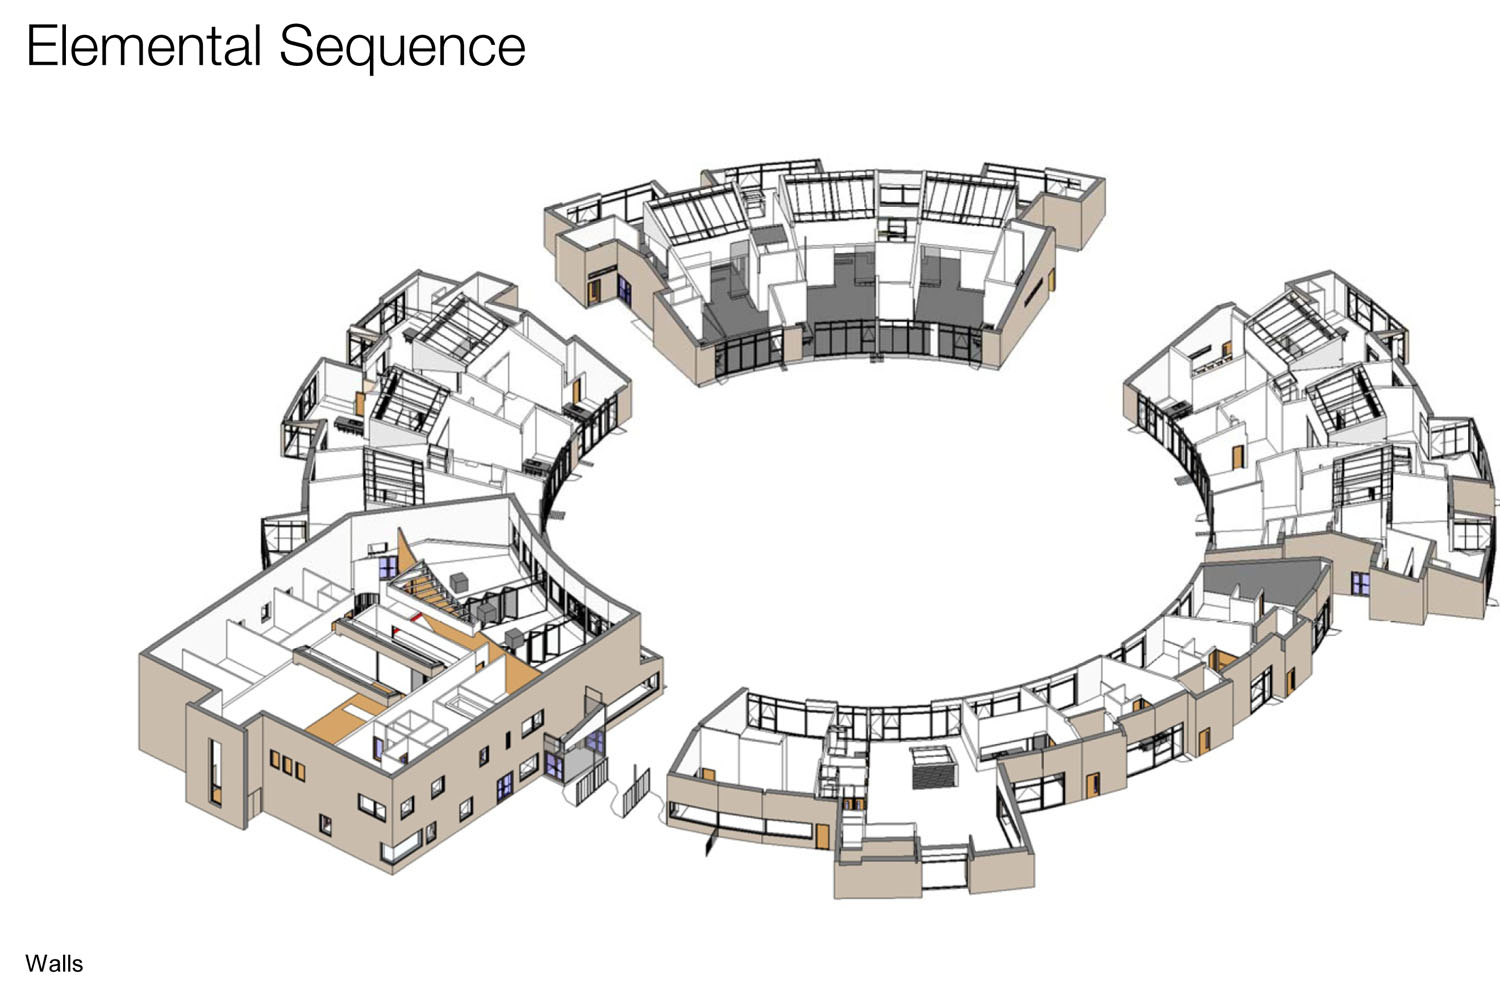 elemental sequence - University of Cambridge Primary School by Marks Barfield Architects